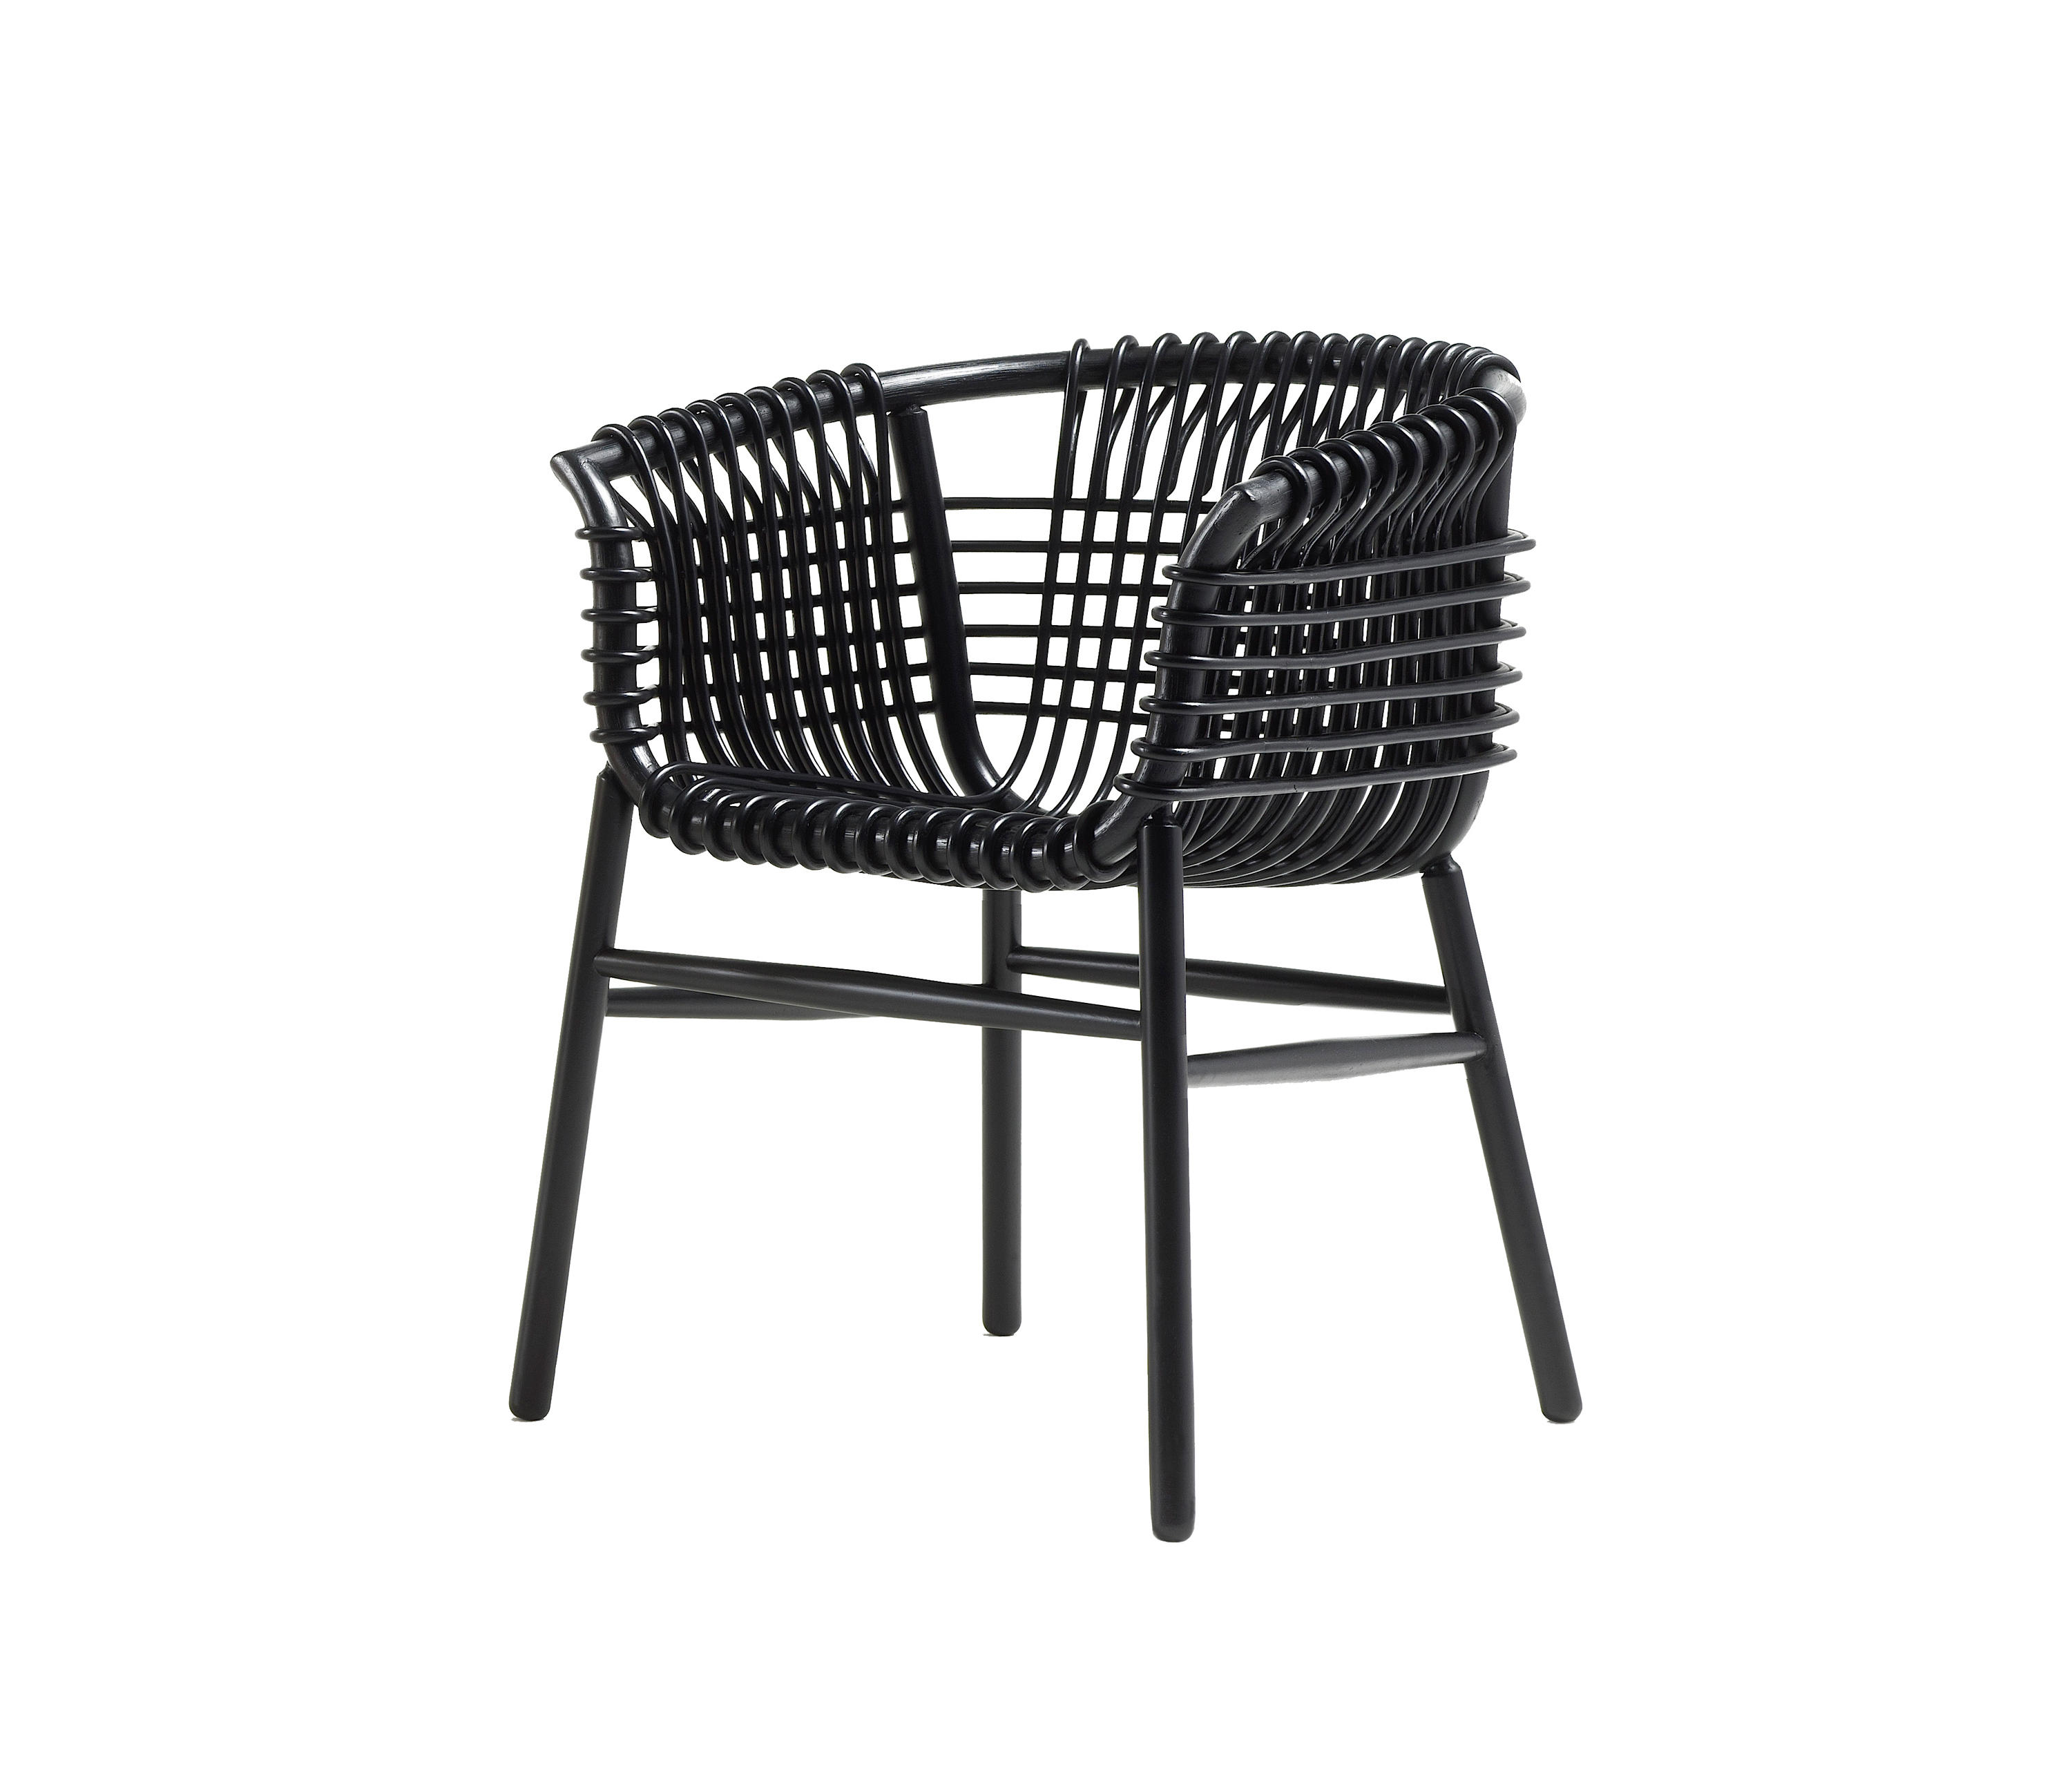 lukis  chairs from cappellini  architonic - lukis by cappellini  chairs